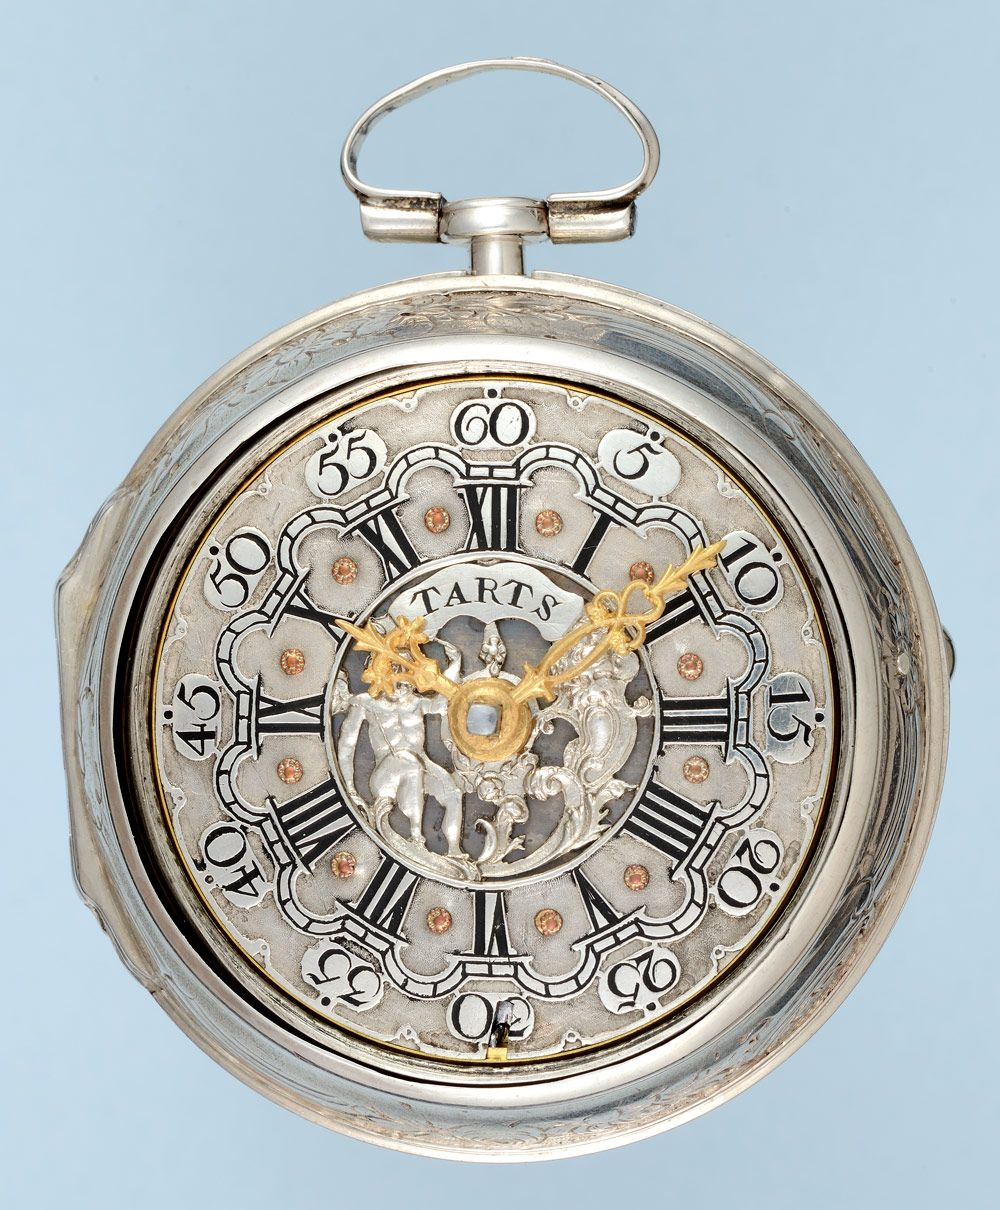 Mens pocket watches with chain images mens gold pocket watches gifts - Antique Pocket Watch Silver Repousse Pair Case With Champleve Dial From Pieces Of Time